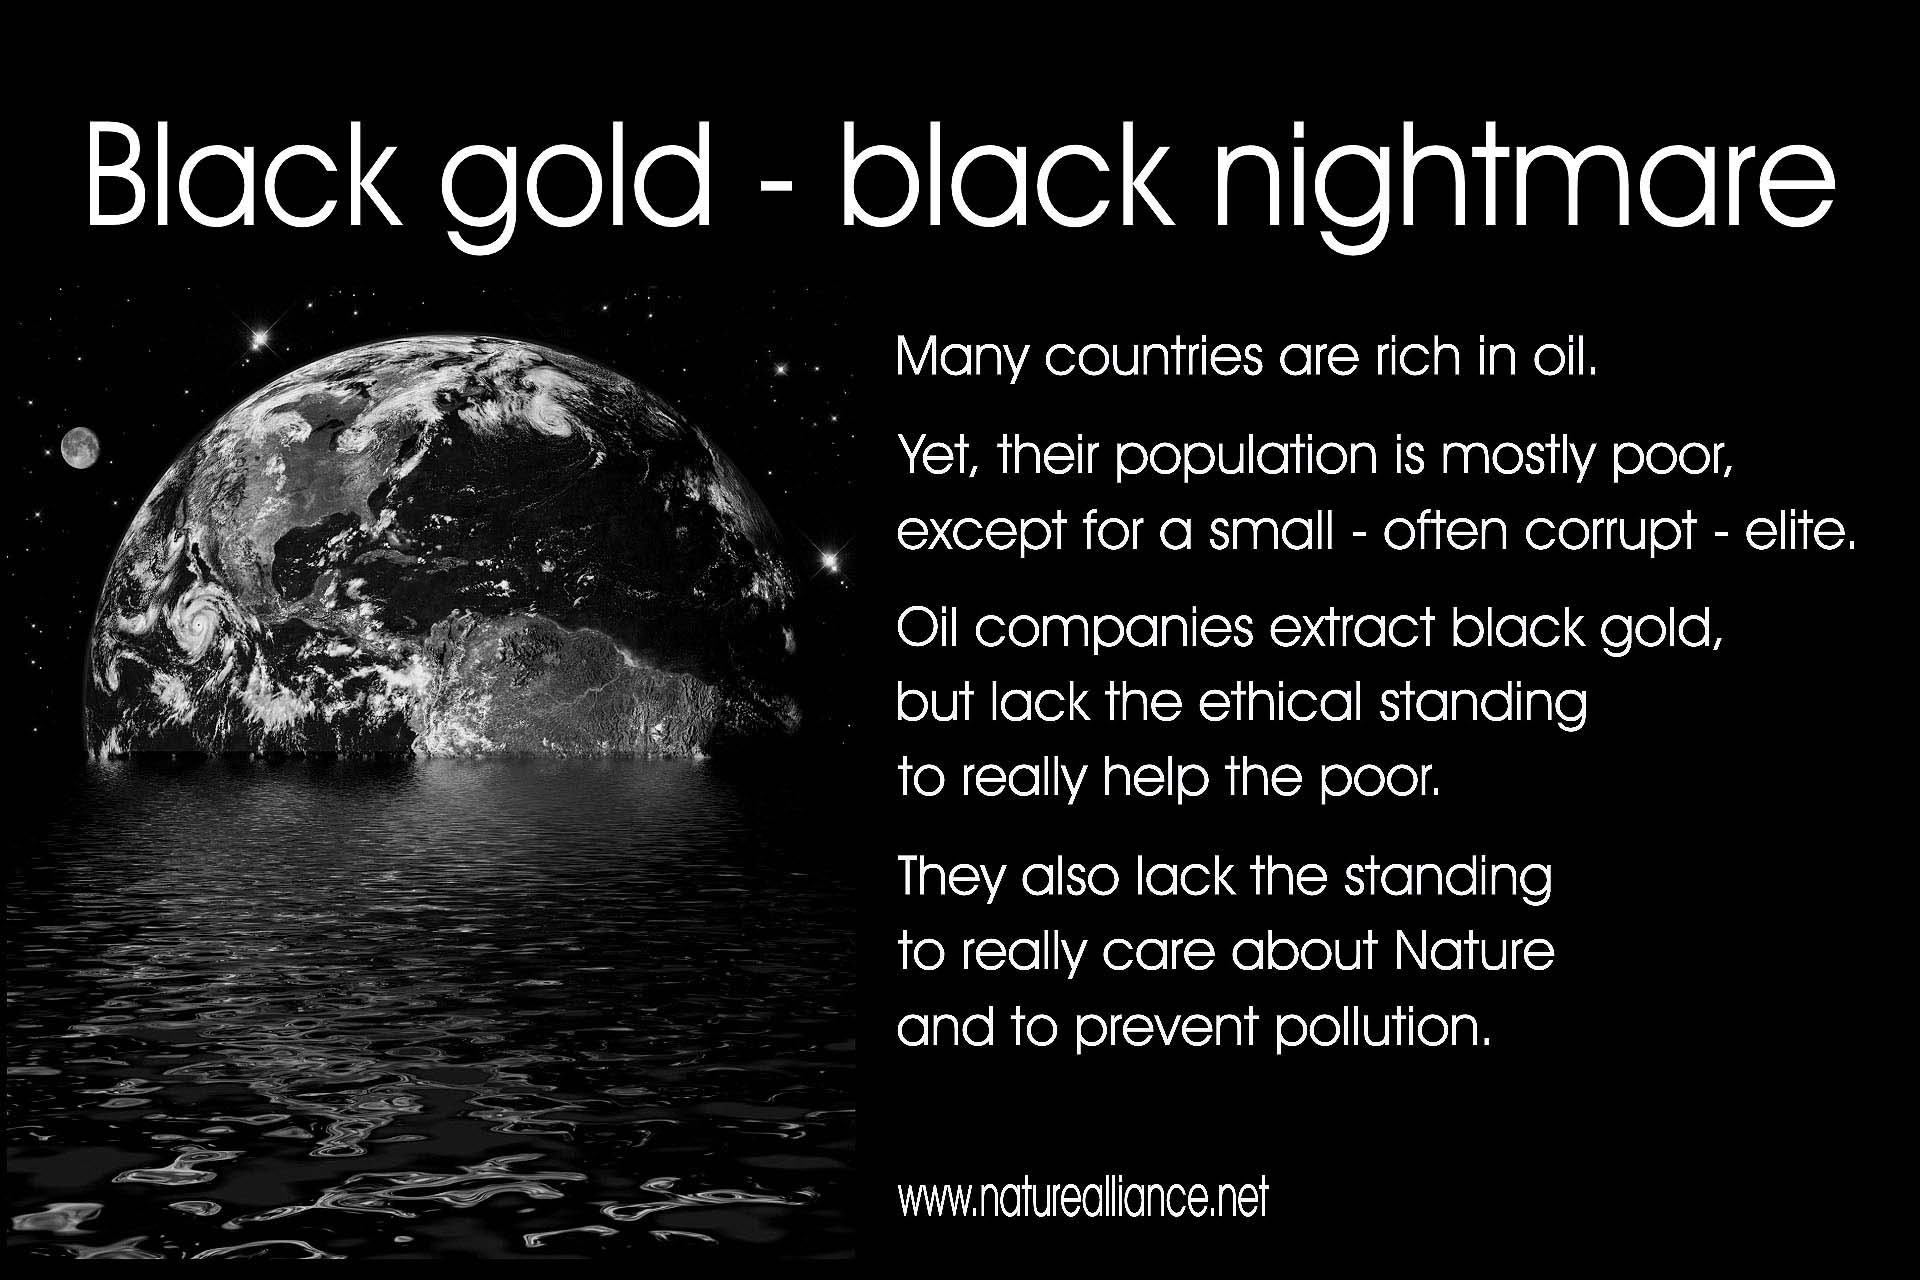 Black gold - black nighmare